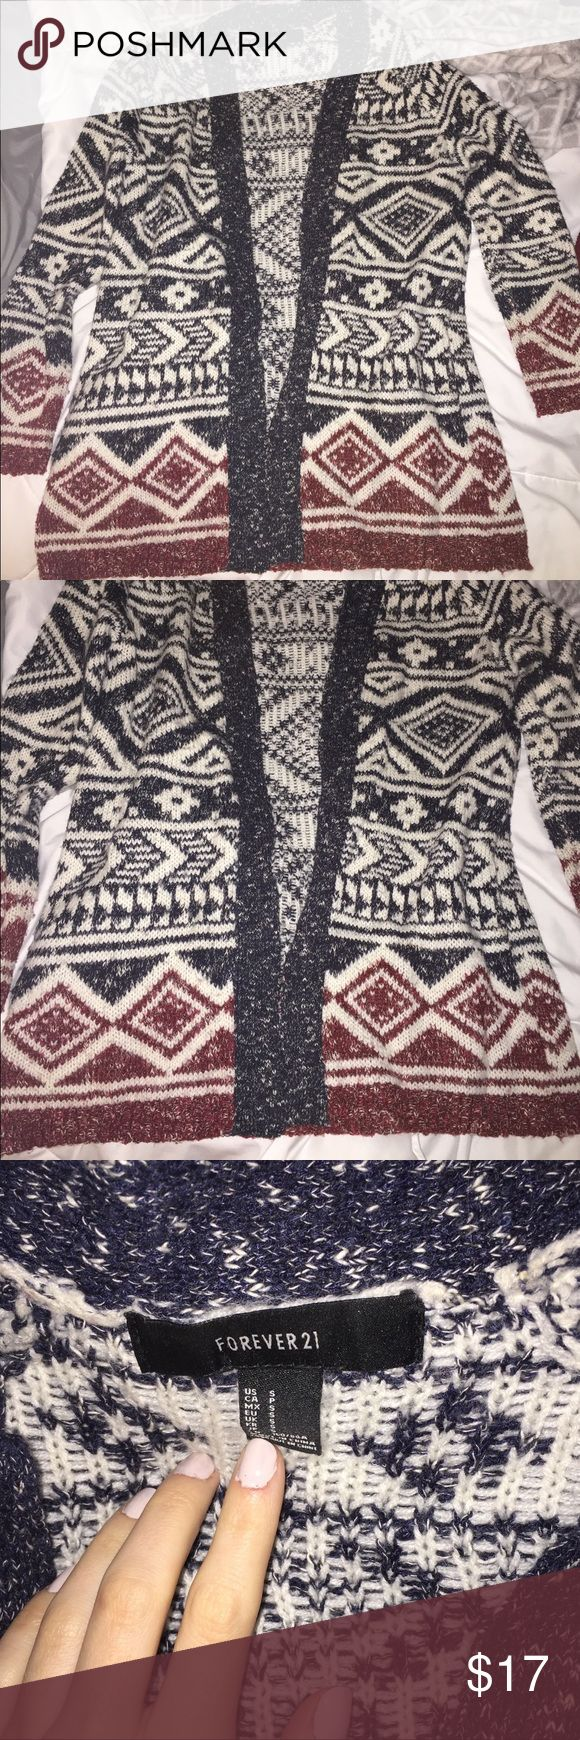 Forever 21 Aztec print cardigan Aztec print cardigan from forever 21. Has pockets. Forever 21 Sweaters Cardigans